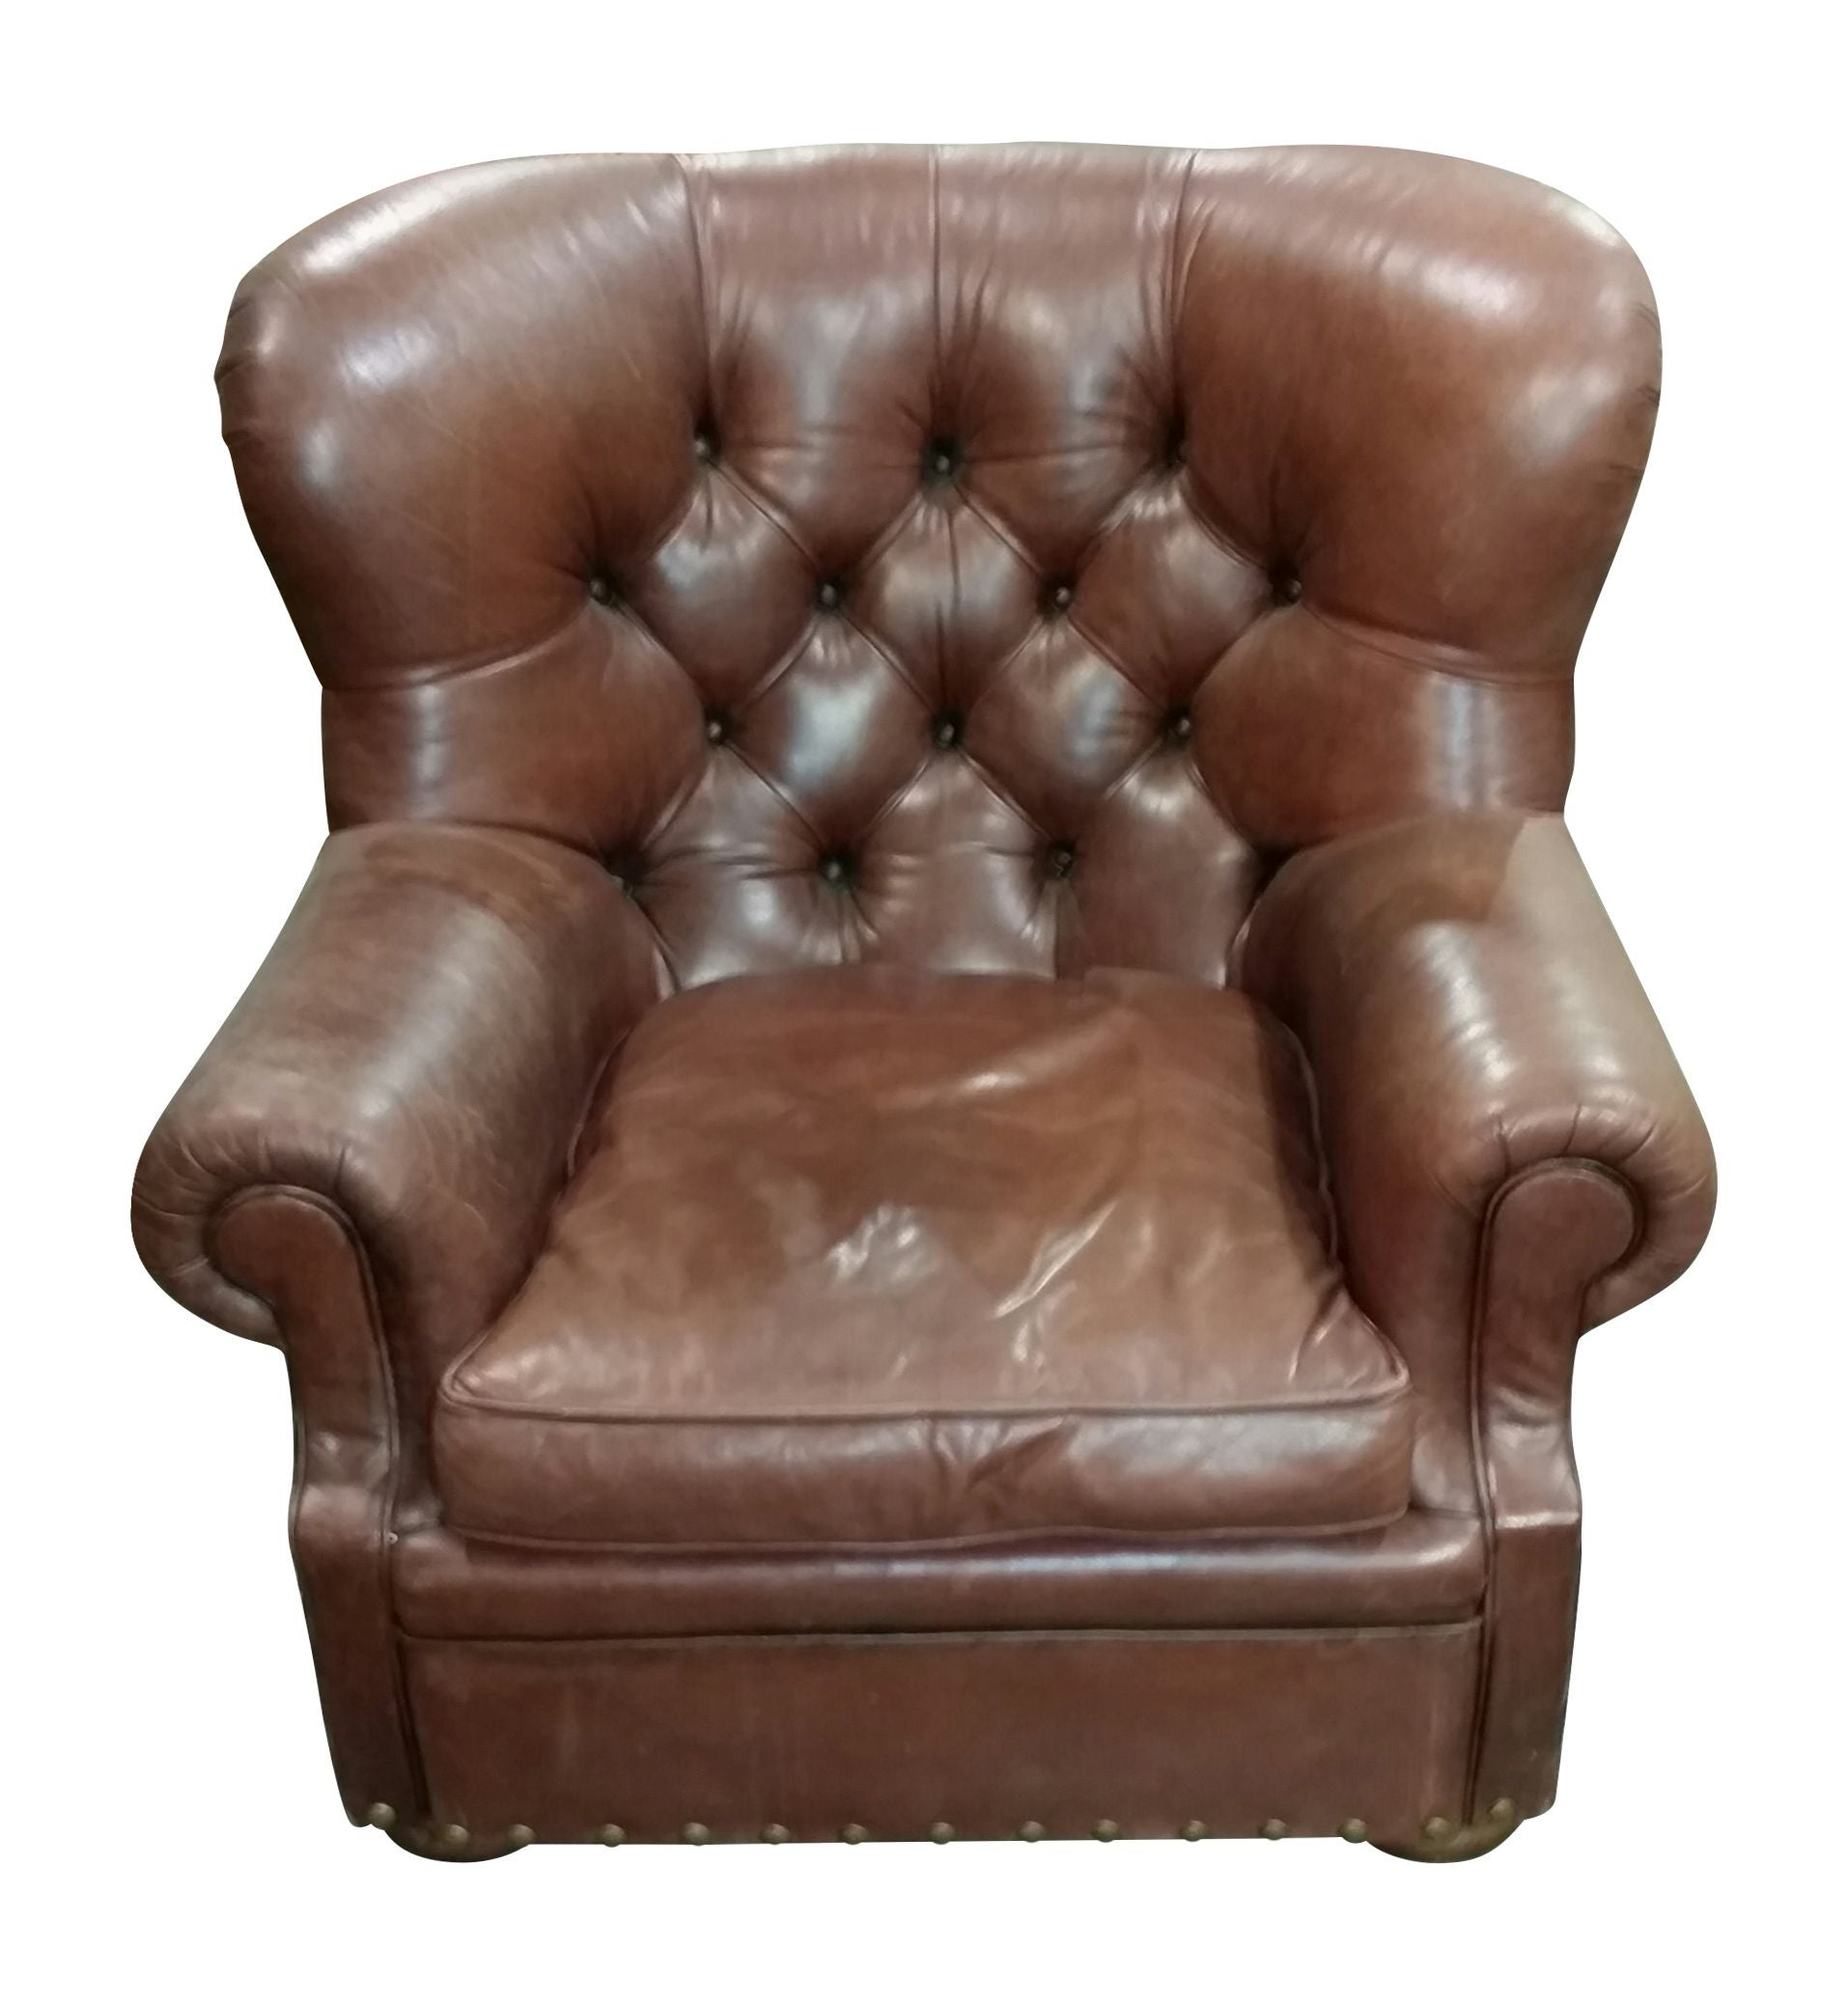 Awesome Vintage Ralph Lauren Leather Chair With Ottoman   Image 5 Of 7